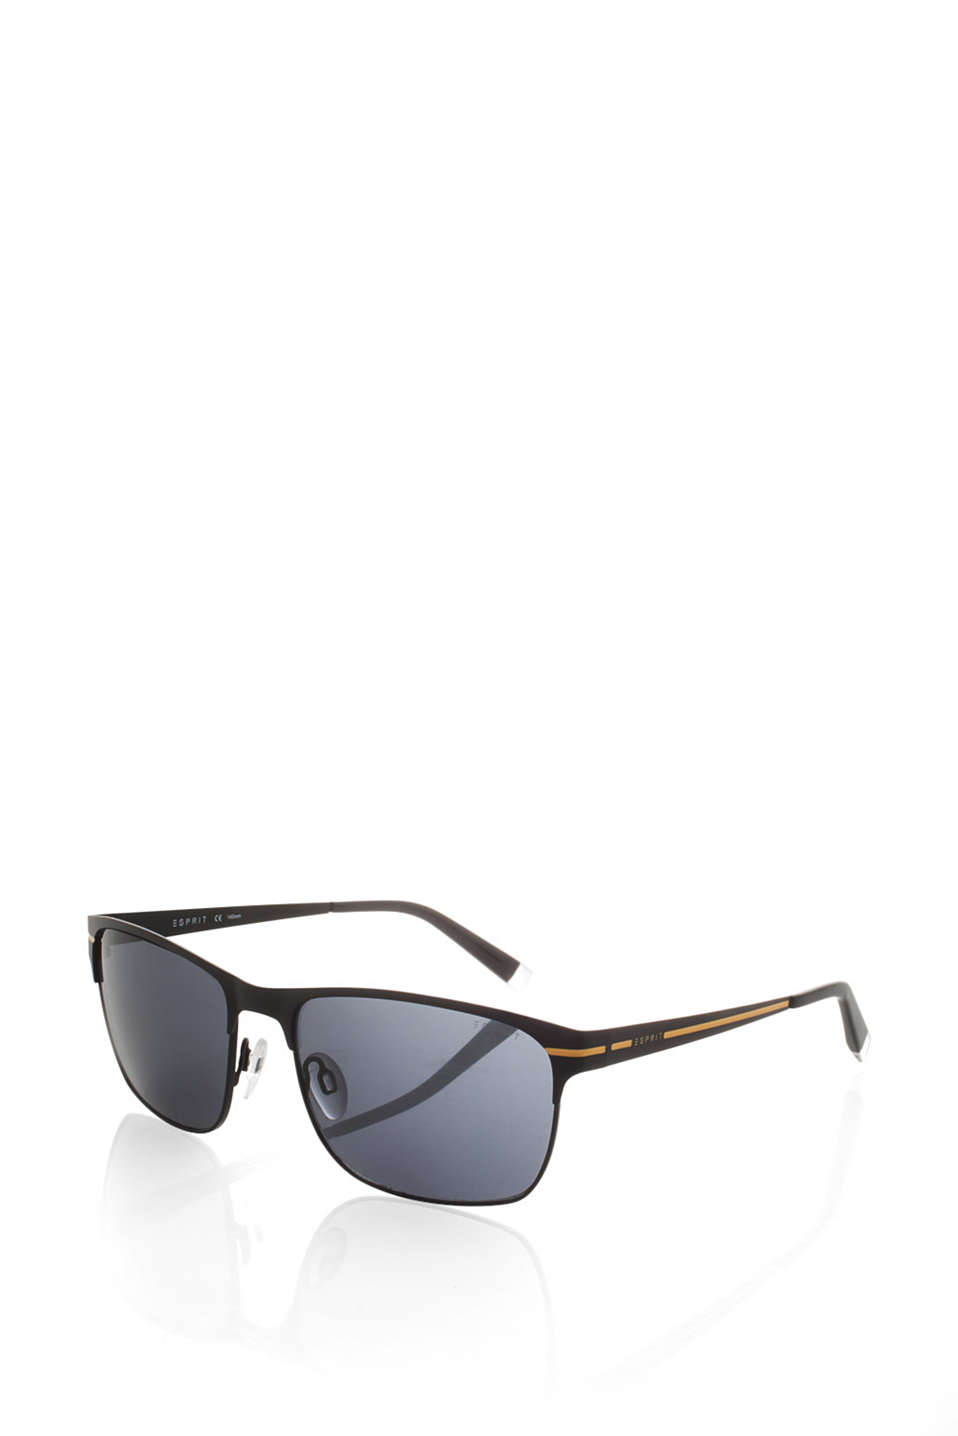 Esprit - Sunglasses with a metal frame